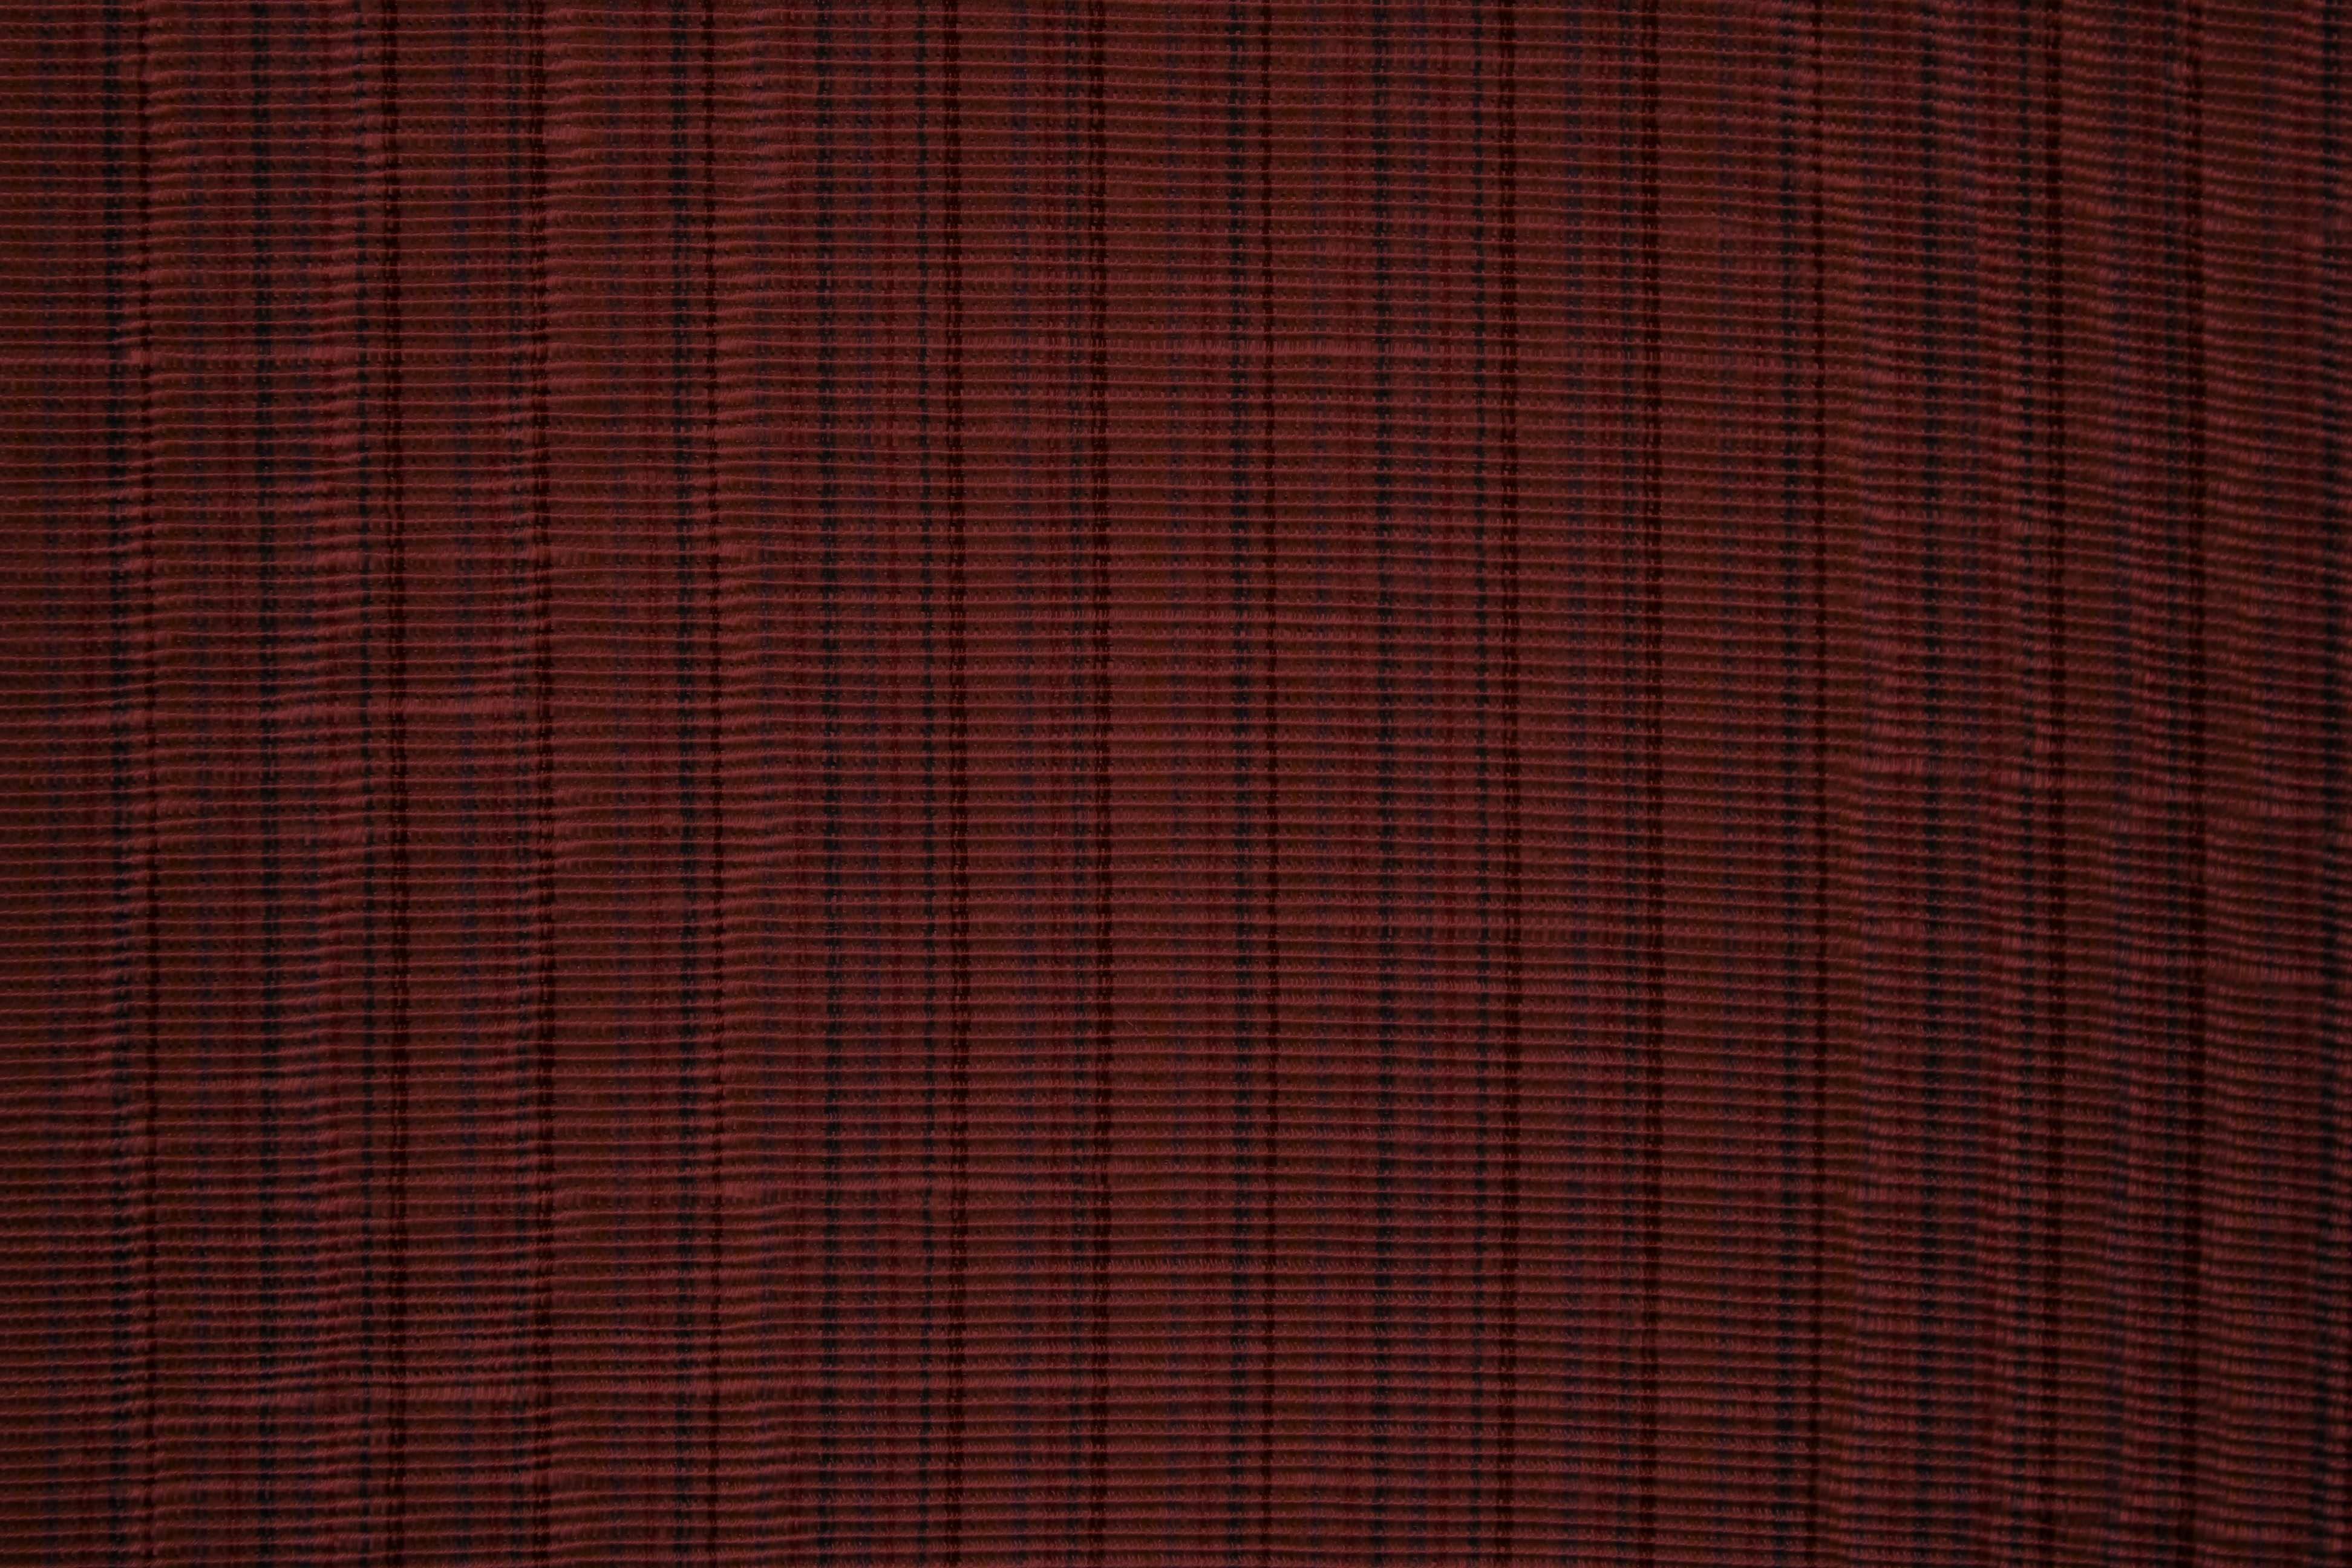 Well-known Brick Red Upholstery Fabric Texture with Stripes Picture | Free  LA96